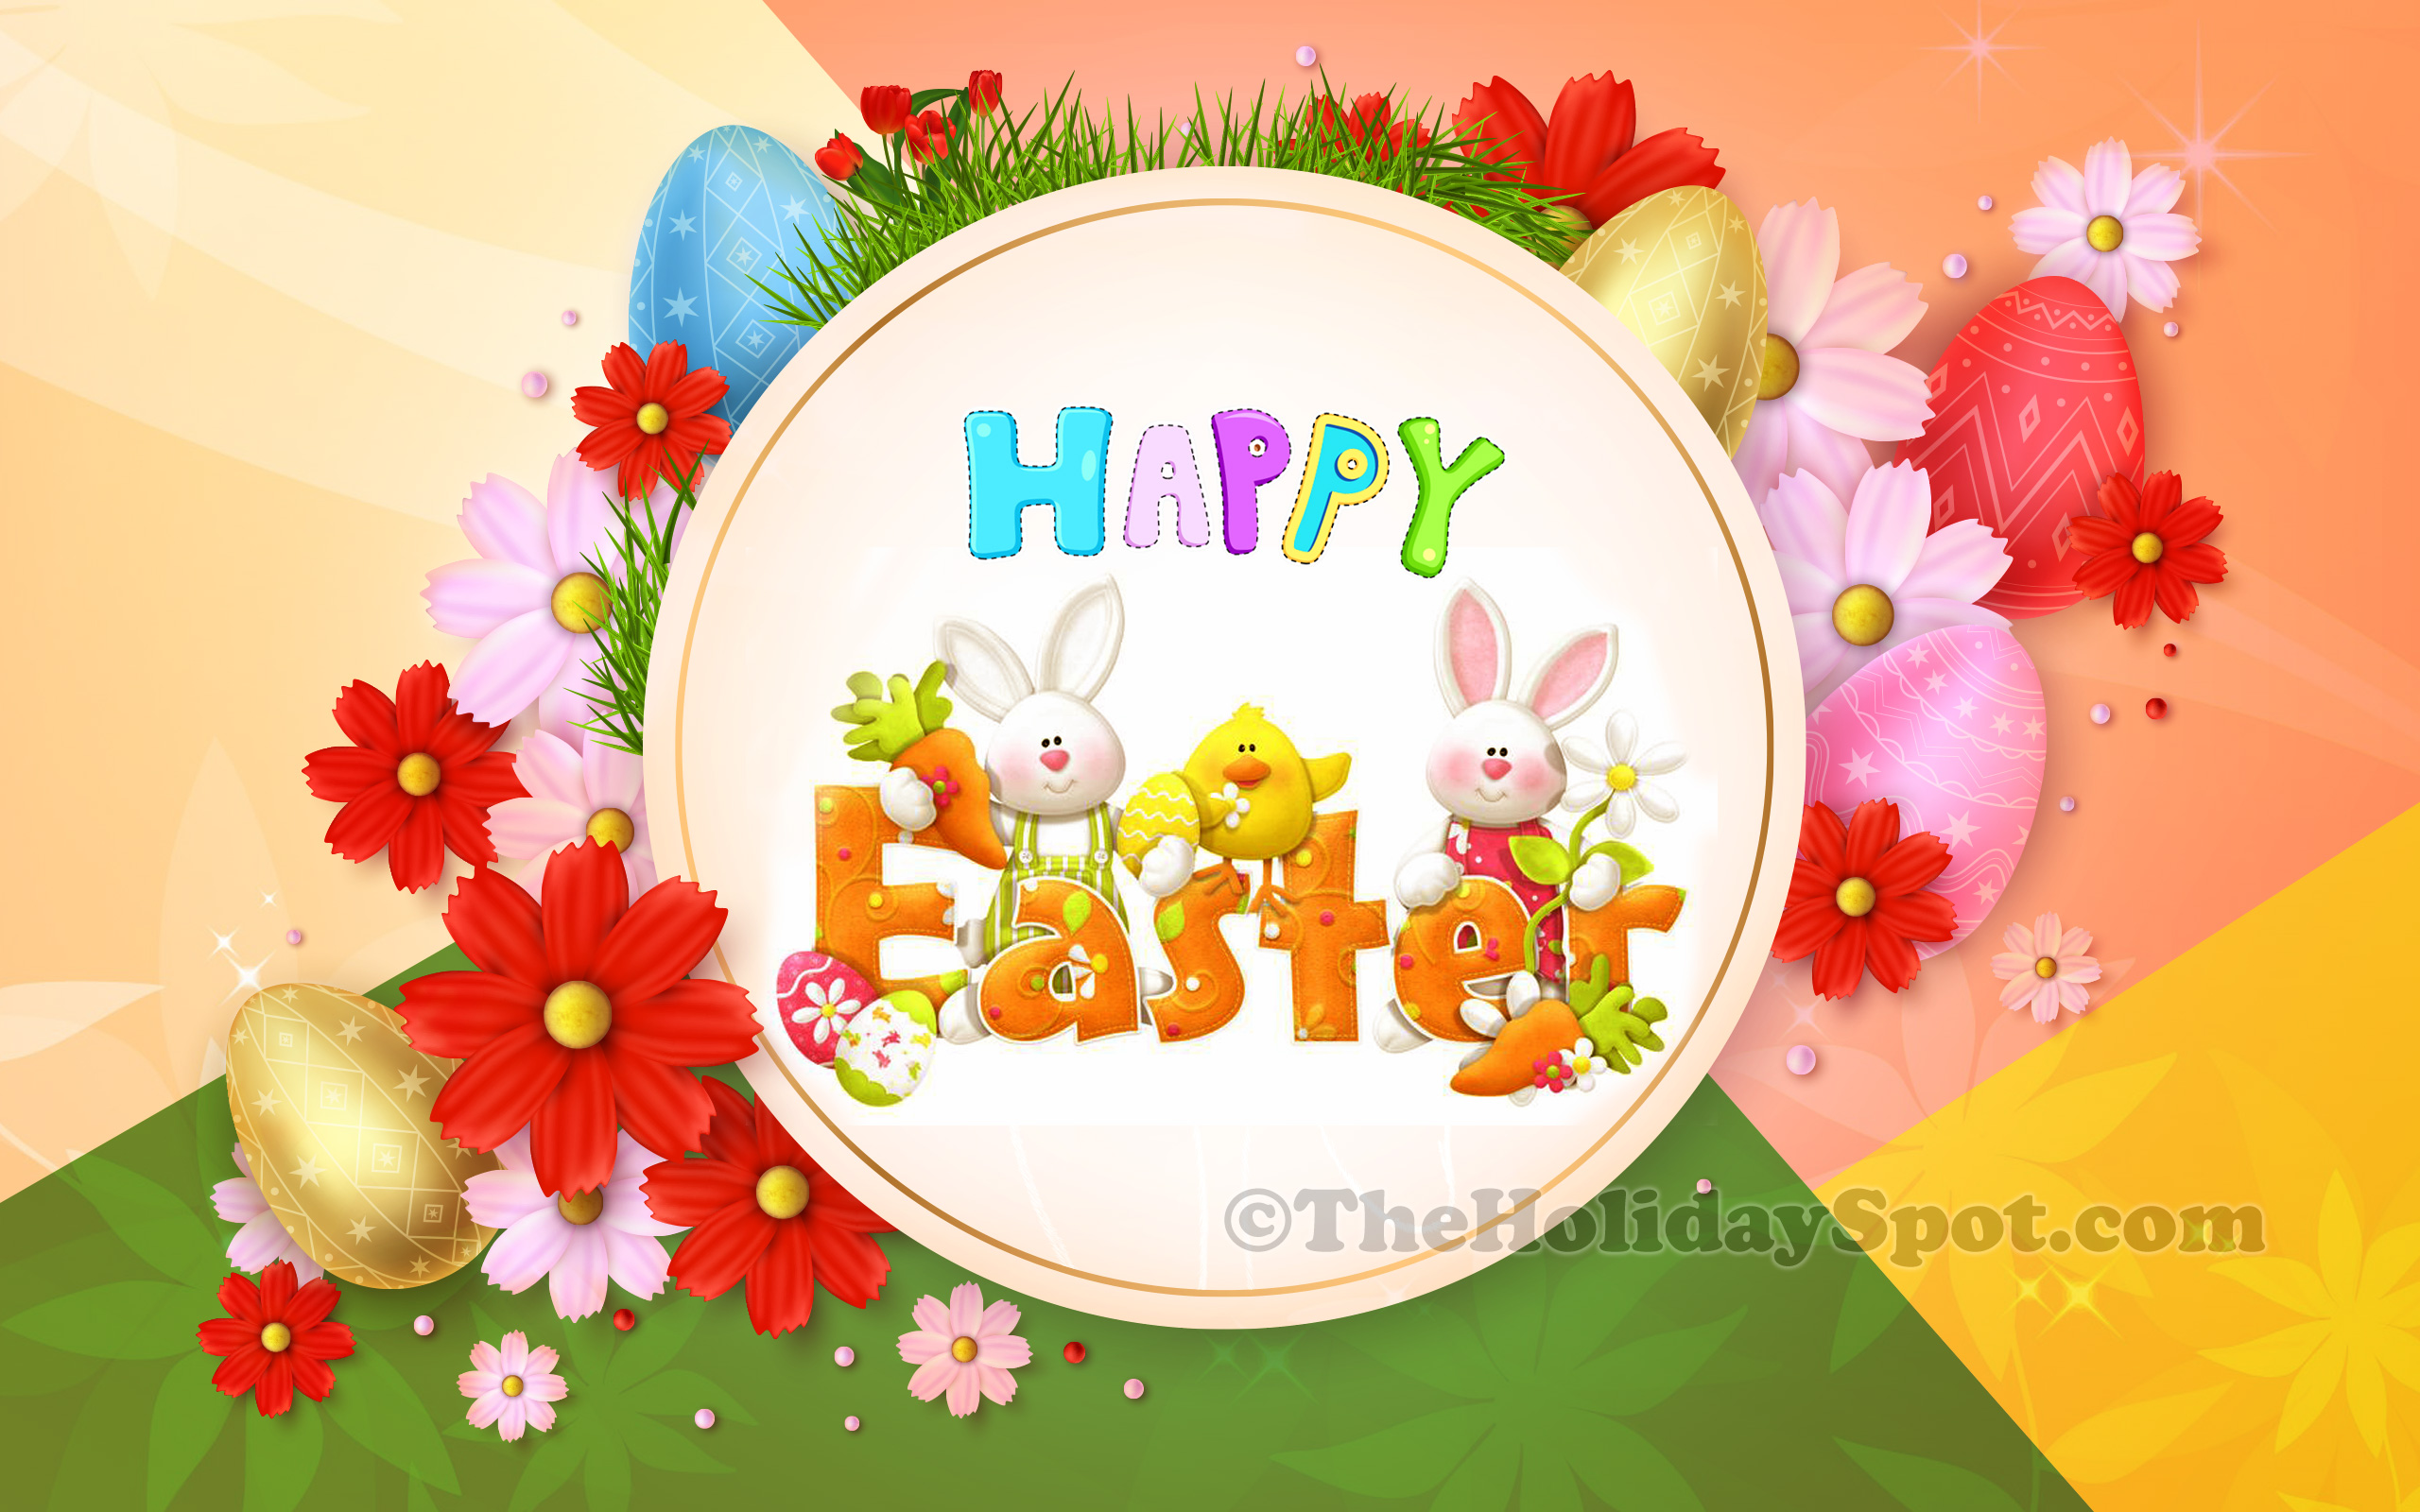 Happy Easter Wallpapers Cute Easter Wallpapers Easter Pictures 2560x1600